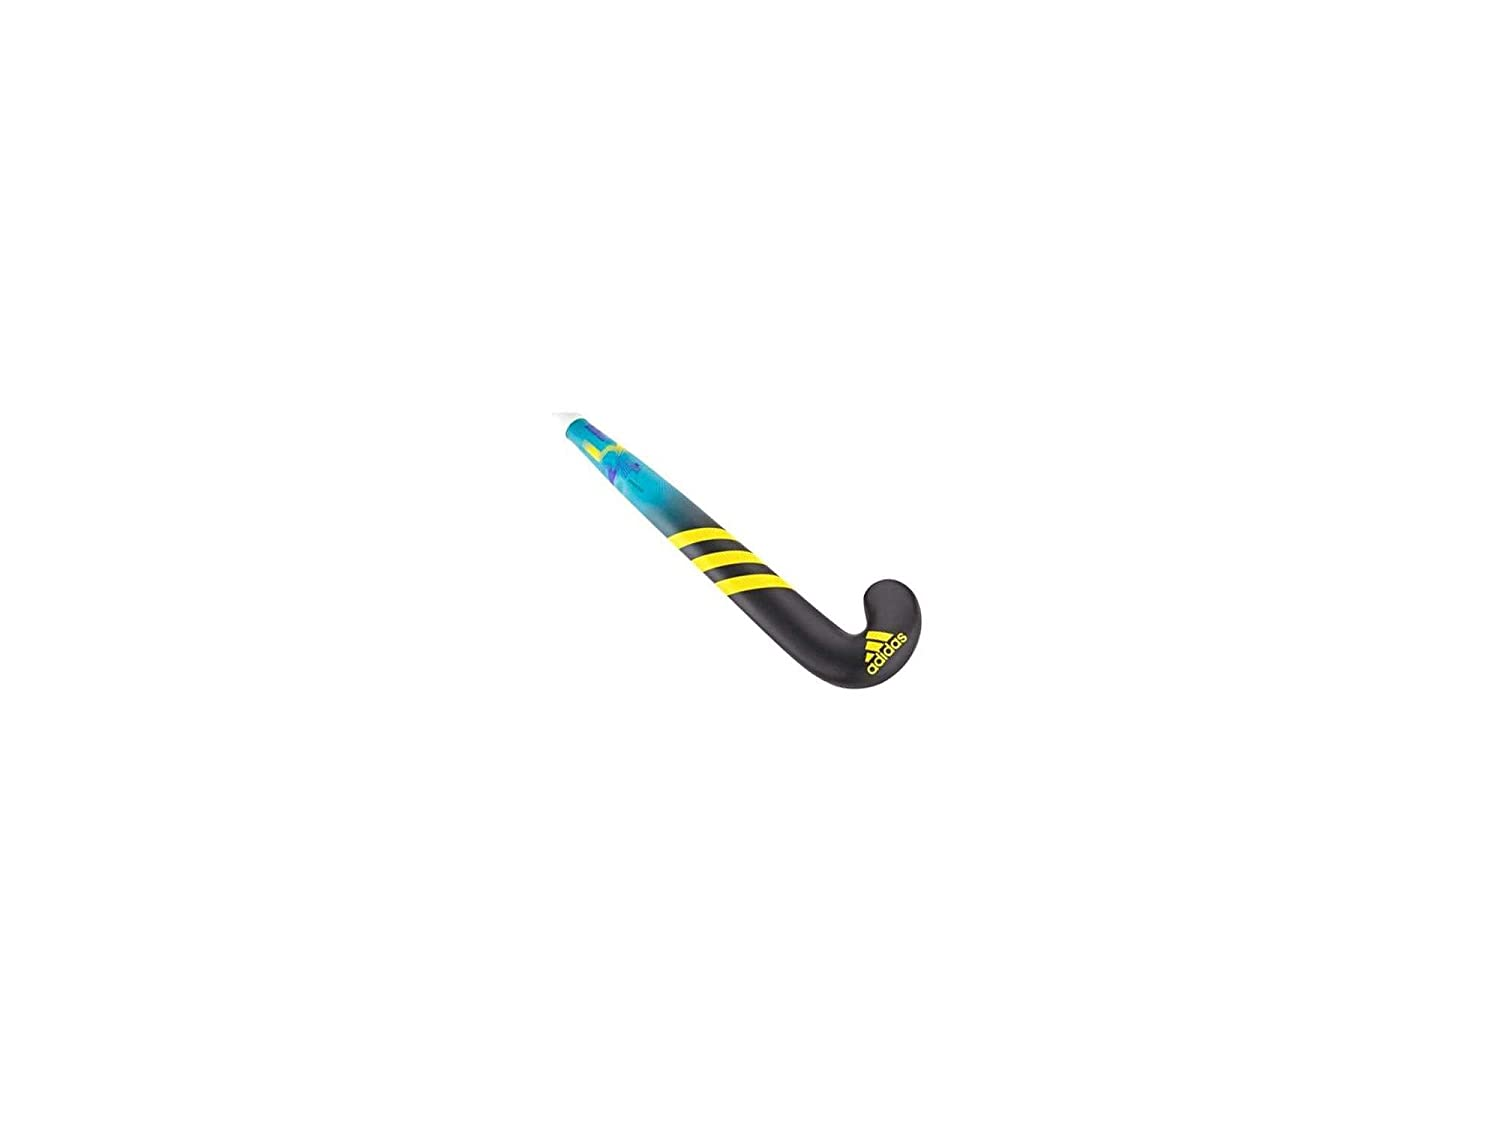 Adidas FLX24 Composite 3 Field Hockey Stick